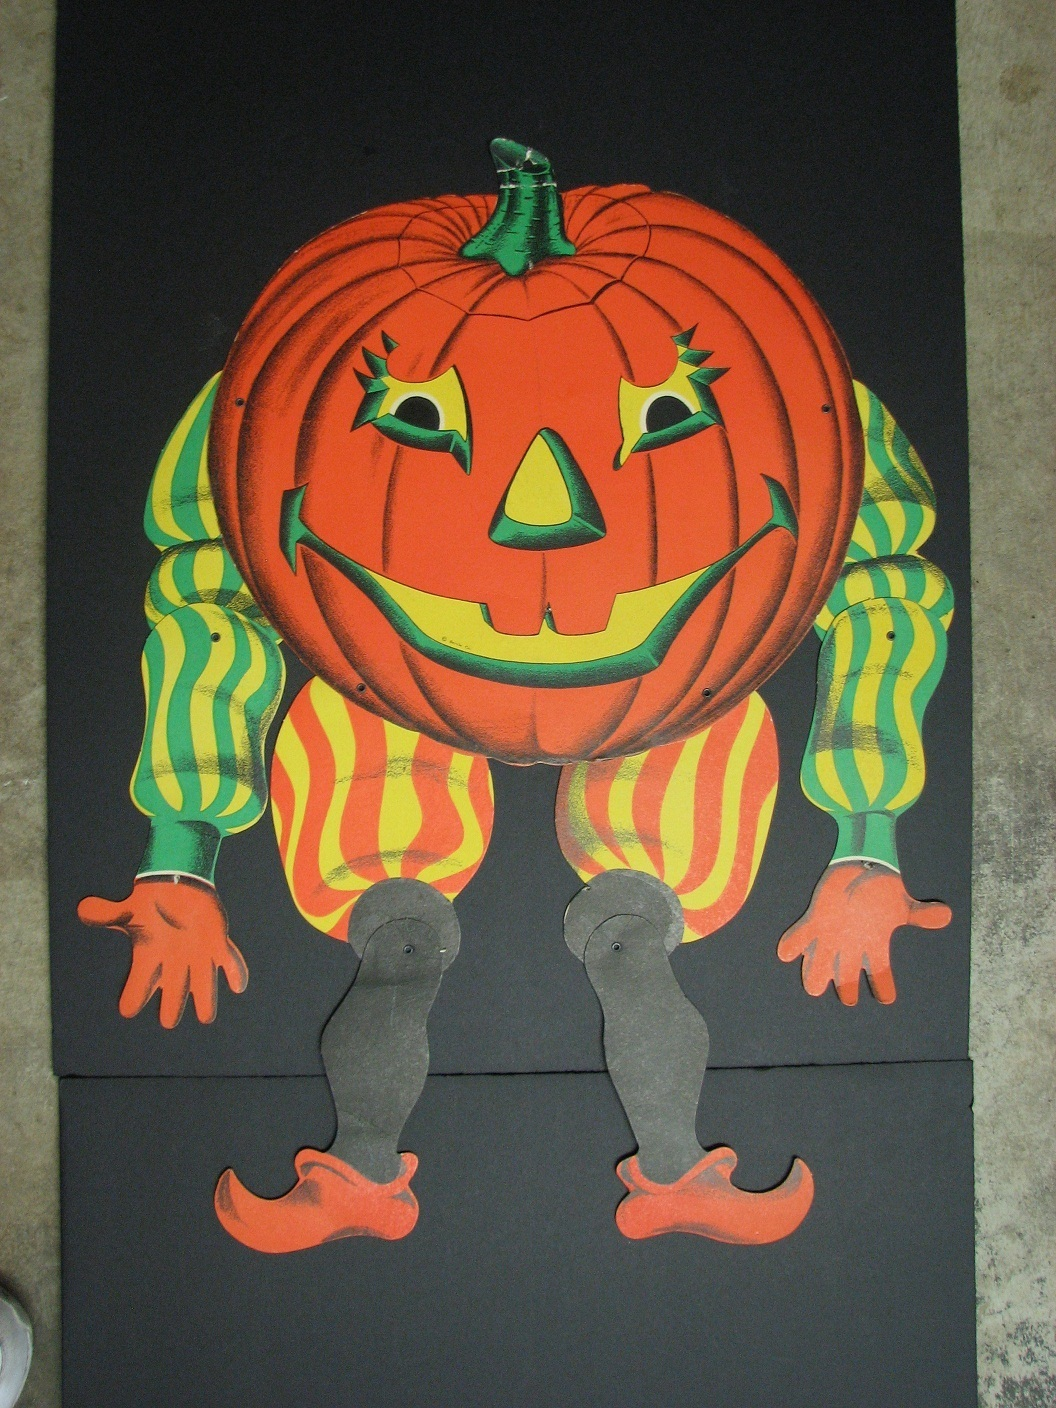 vintage beistle halloween pumpkin jack o lantern jointed die cut party decoration001 - Beistle Halloween Decorations